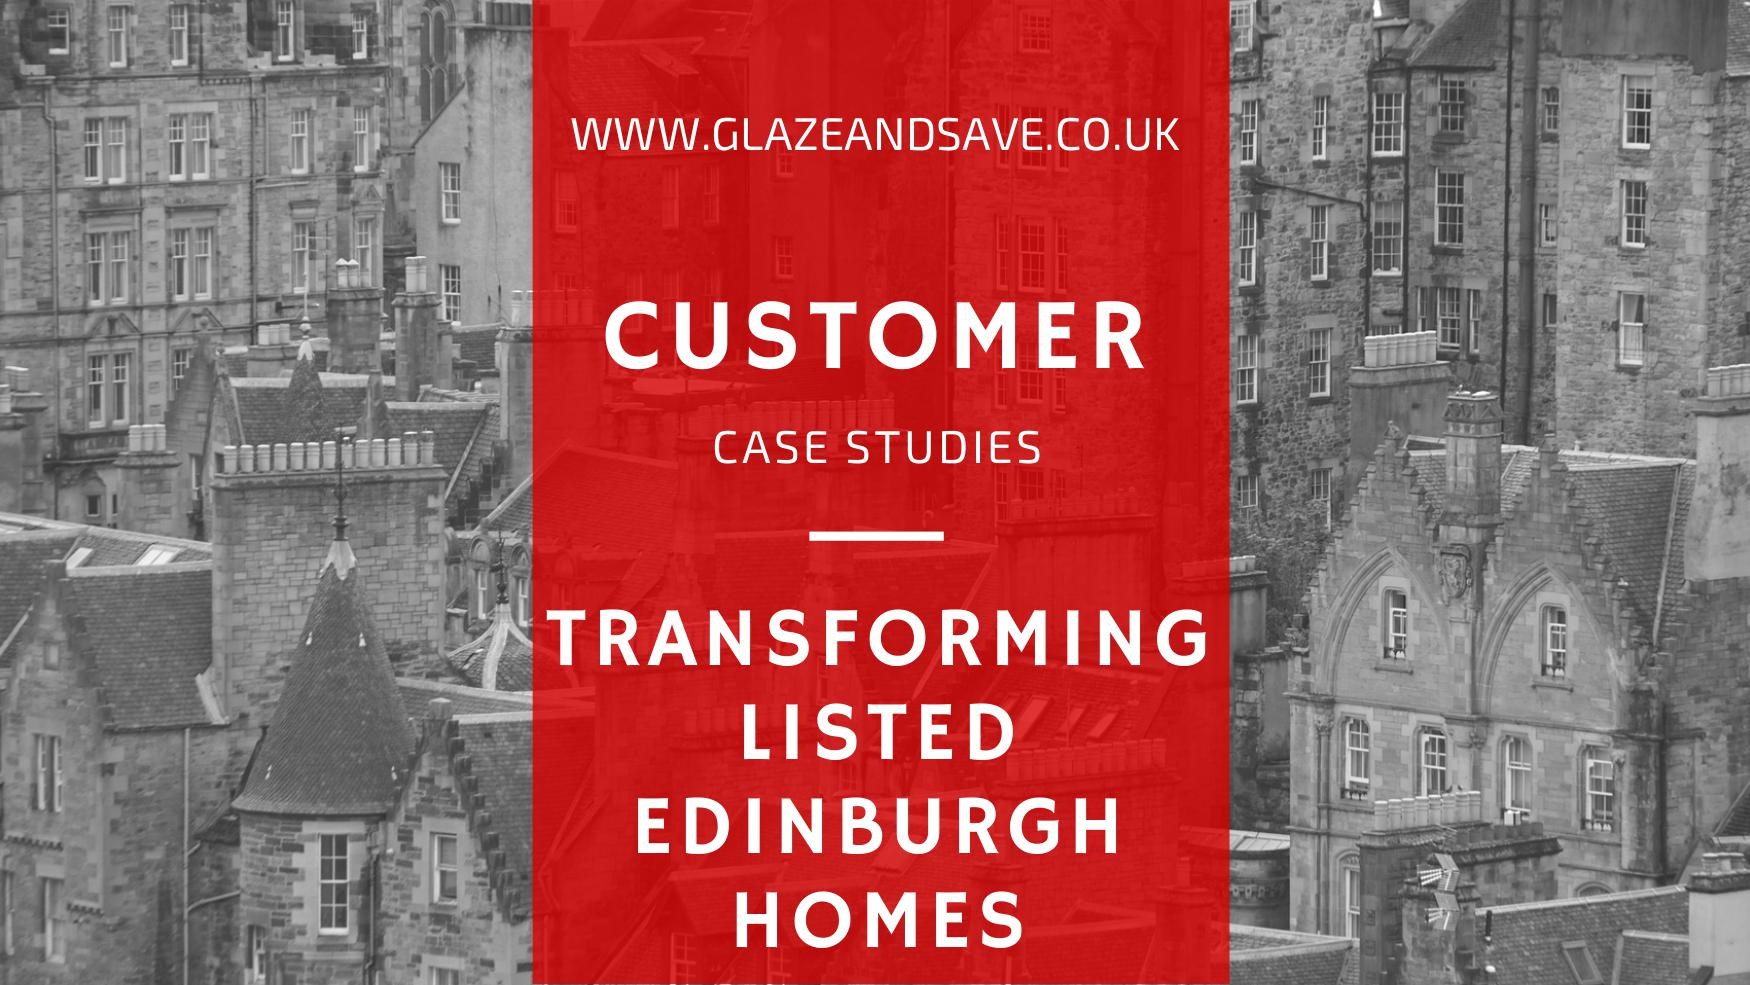 Transforming listed Edinburgh hoes with Glaze & Save InvisiTherm bespoke magnetic secondary glazing and draught proofing.